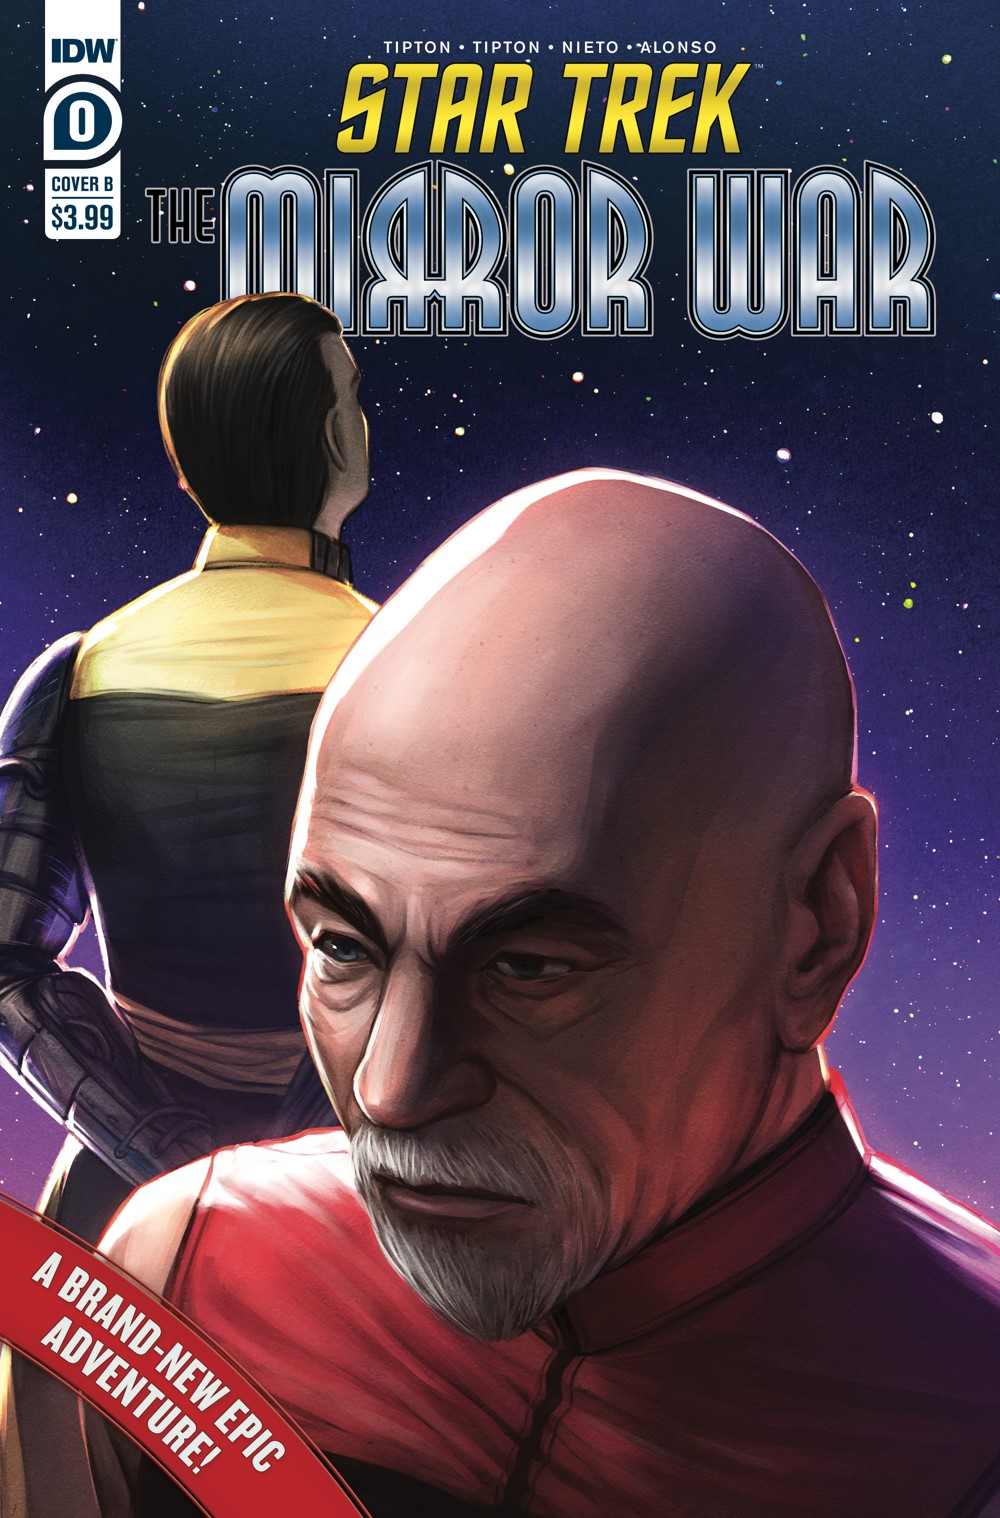 ST_TMW00-coverB ComicList: IDW Publishing New Releases for 09/08/2021